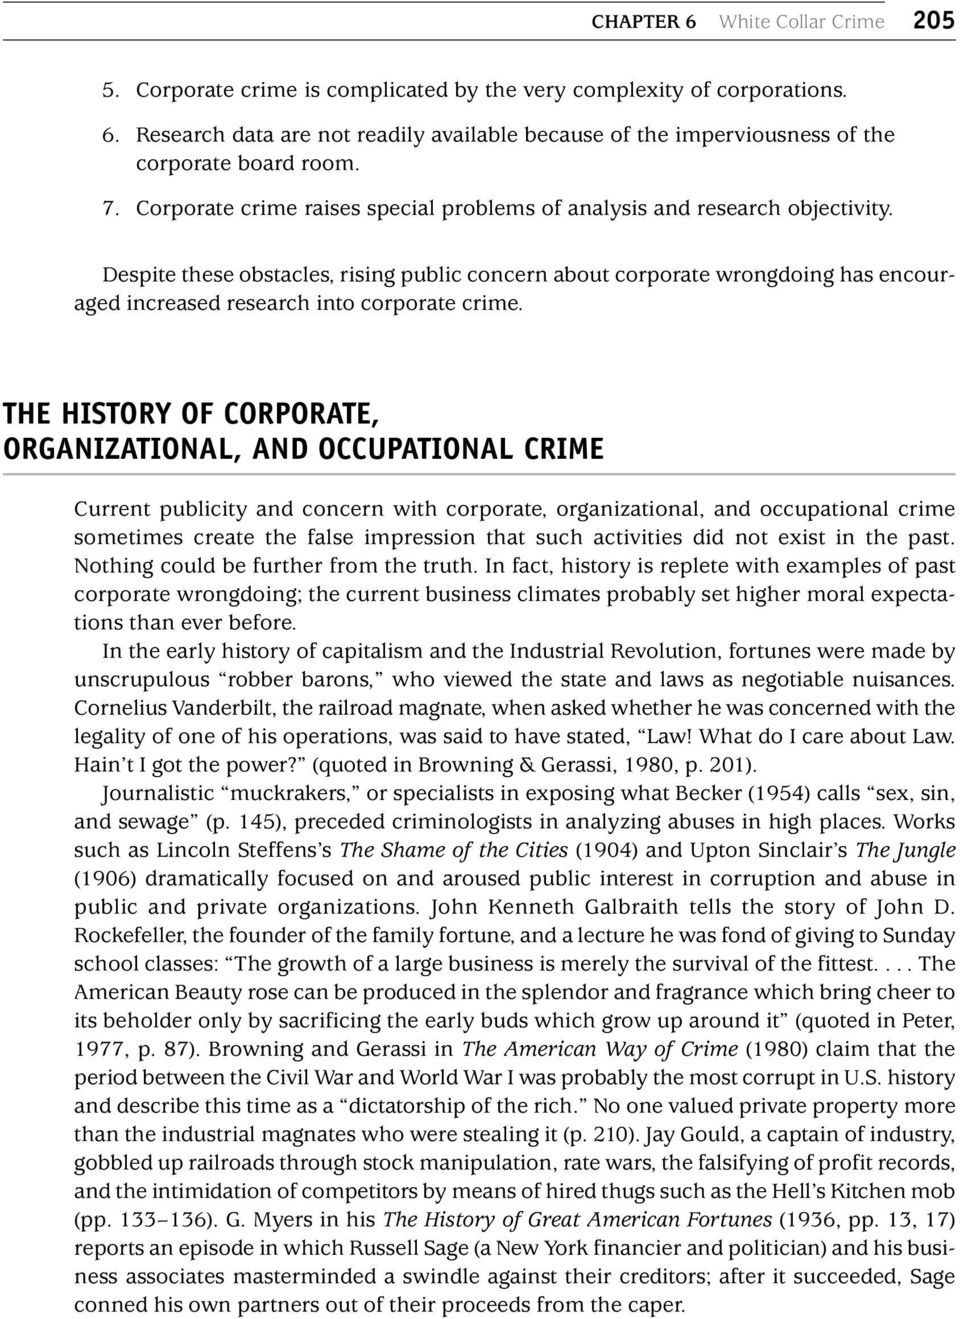 Despite these obstacles, rising public concern about corporate wrongdoing has encouraged increased research into corporate crime.